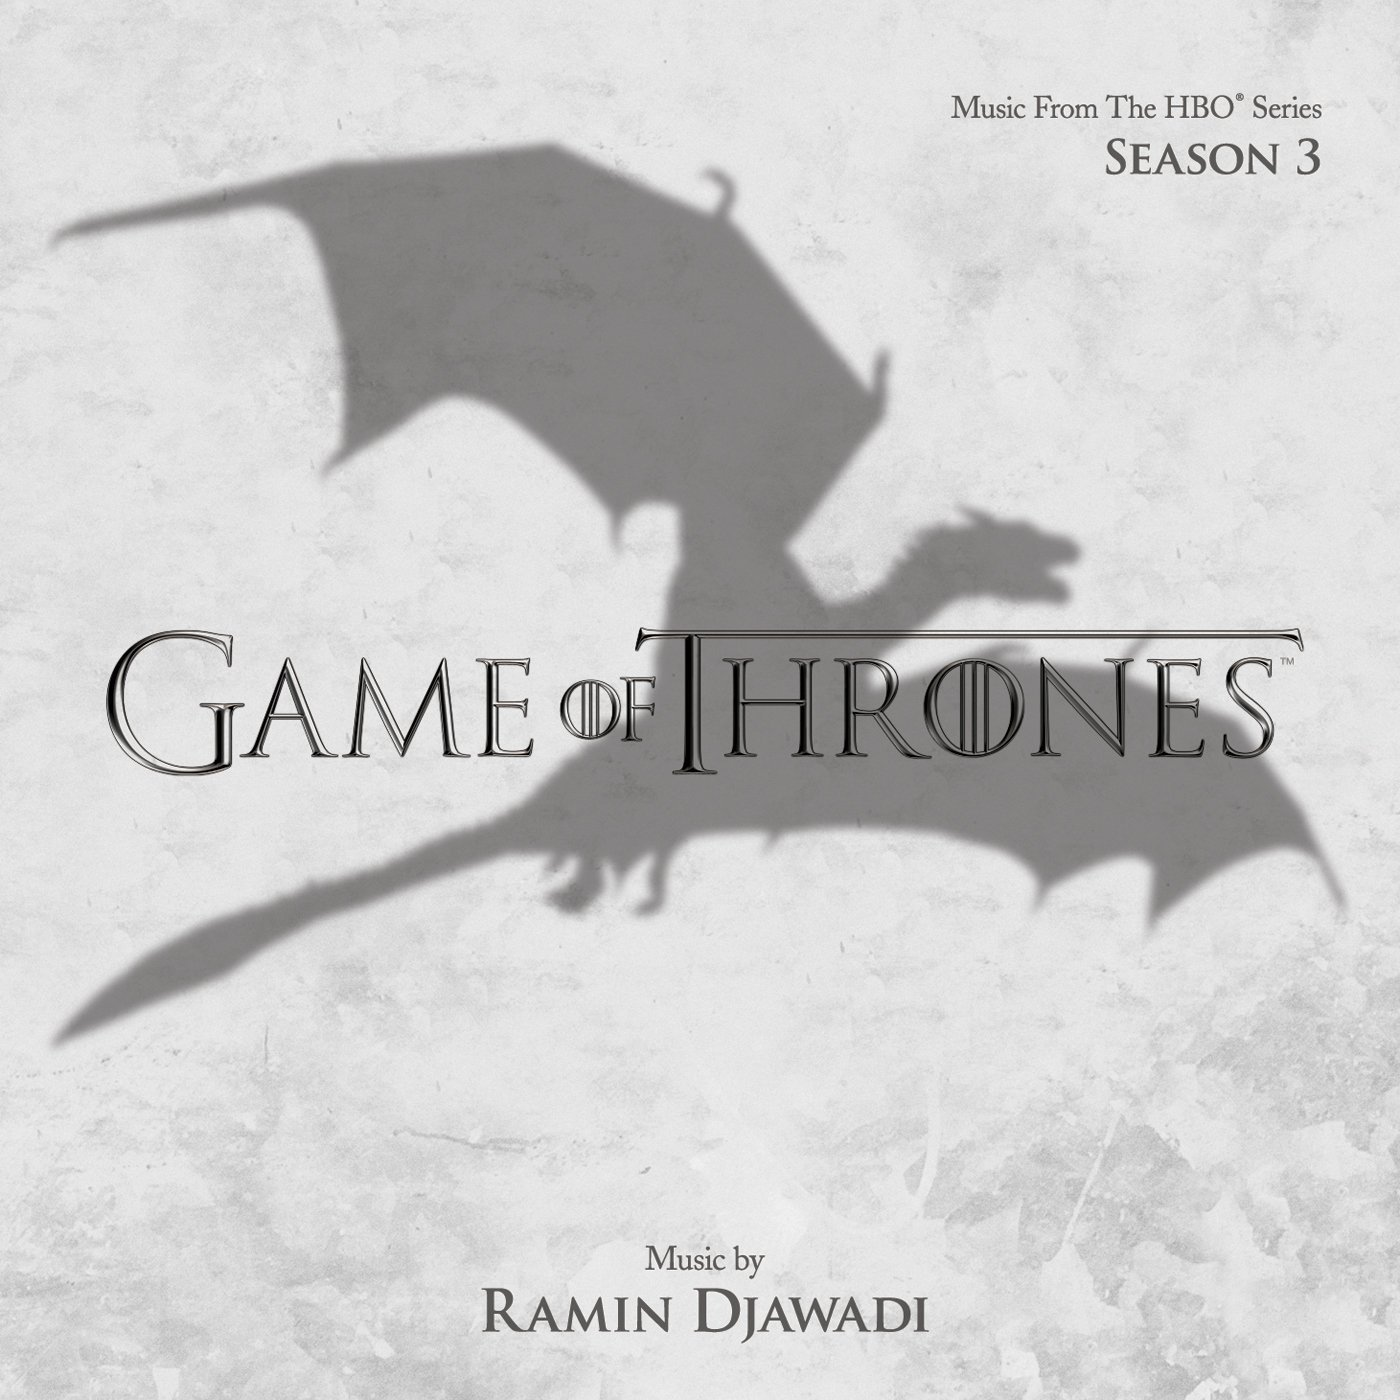 game of thrones music from the hbo series season 3 game of